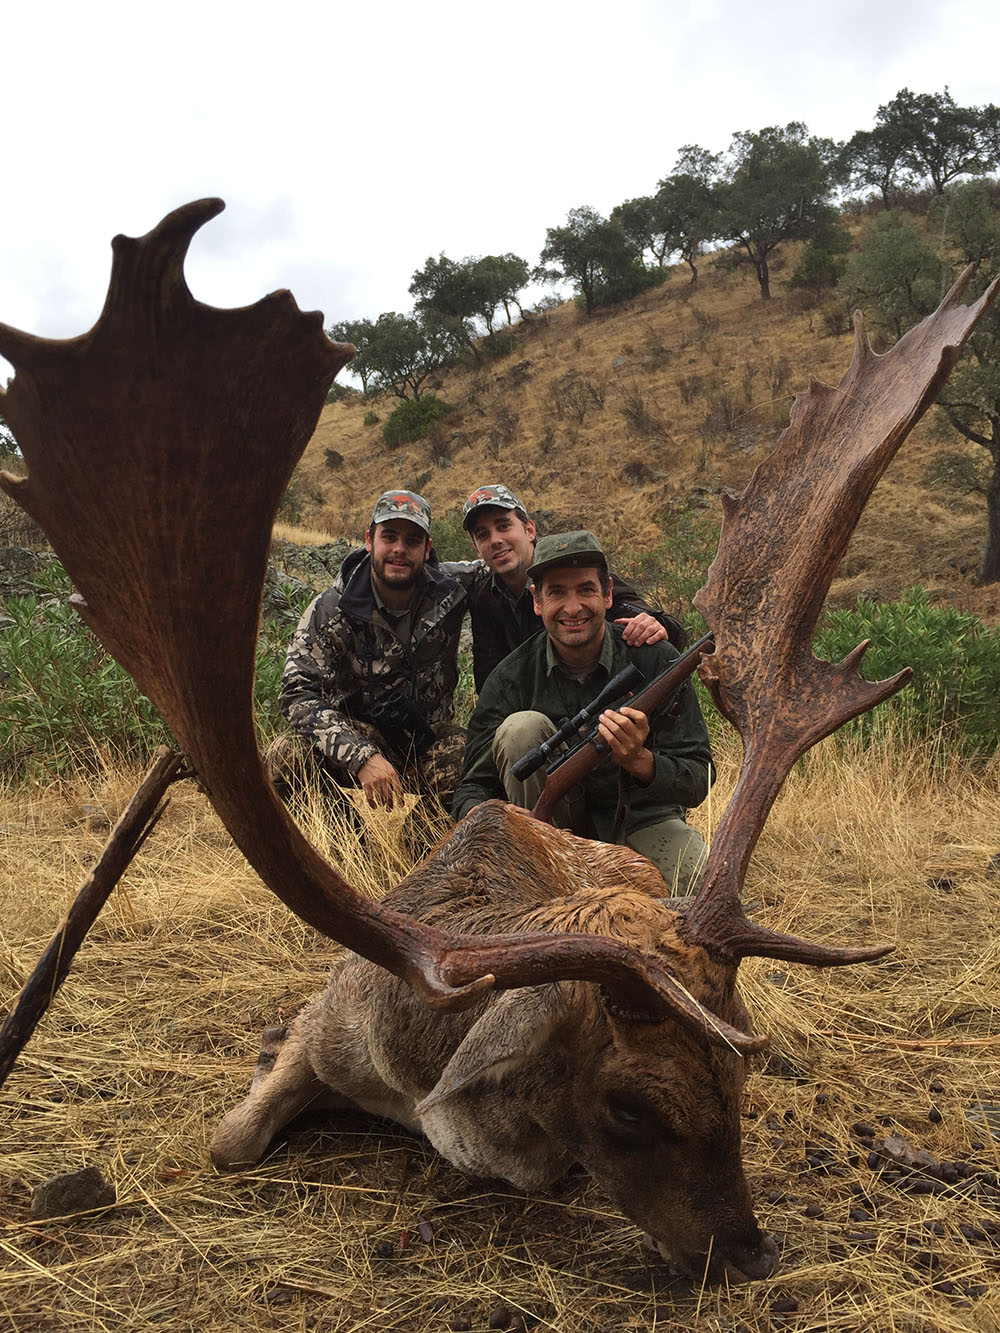 International Wild Hunting photo gallery